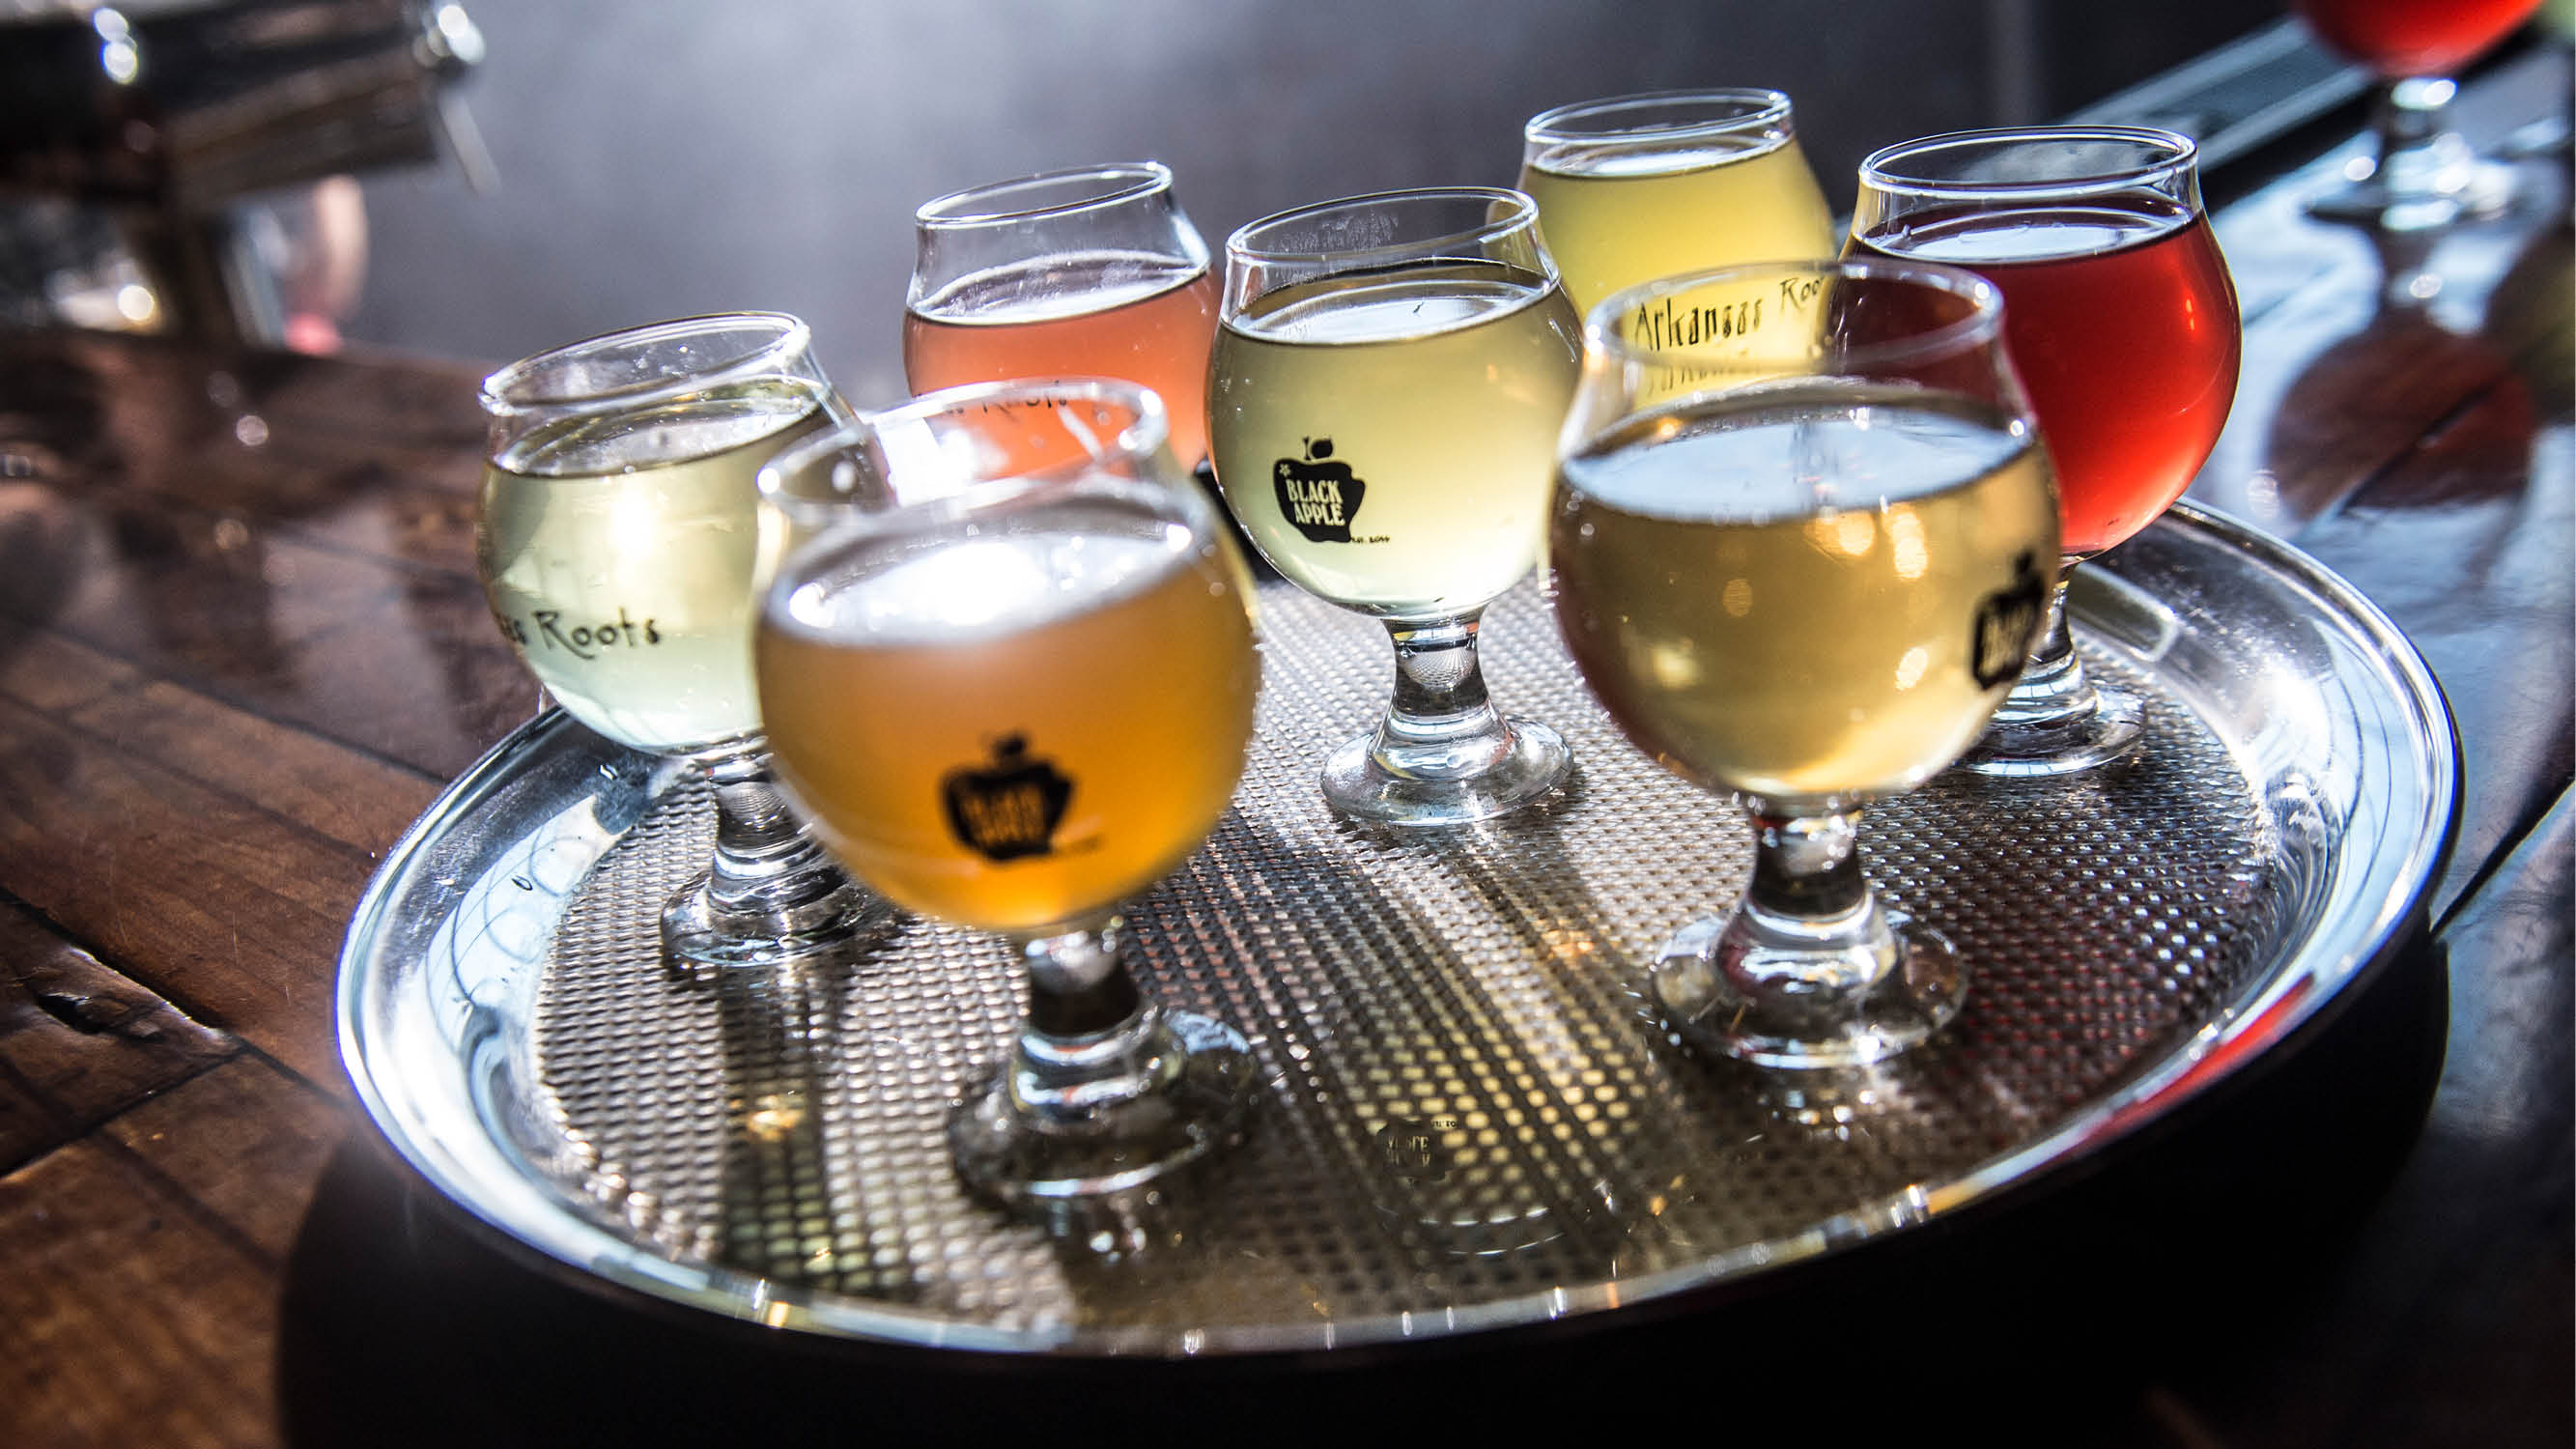 A tray of glasses filled with cider from Black Apple Hard Cider